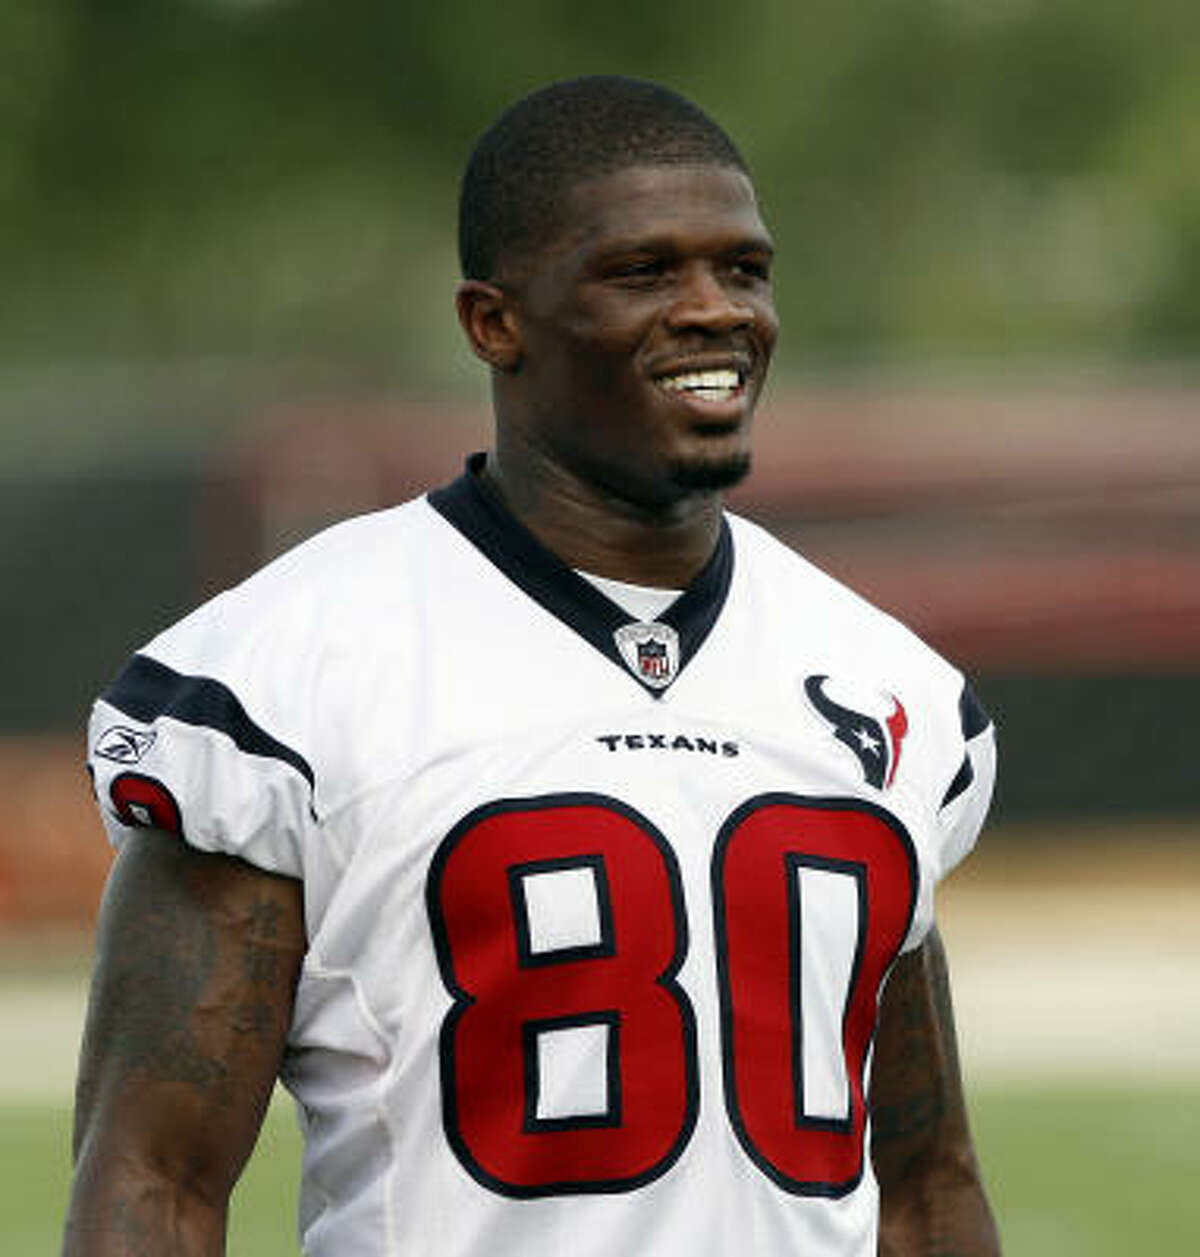 Andre Johnson Position: Wide receiver Receiving yards: 1,147